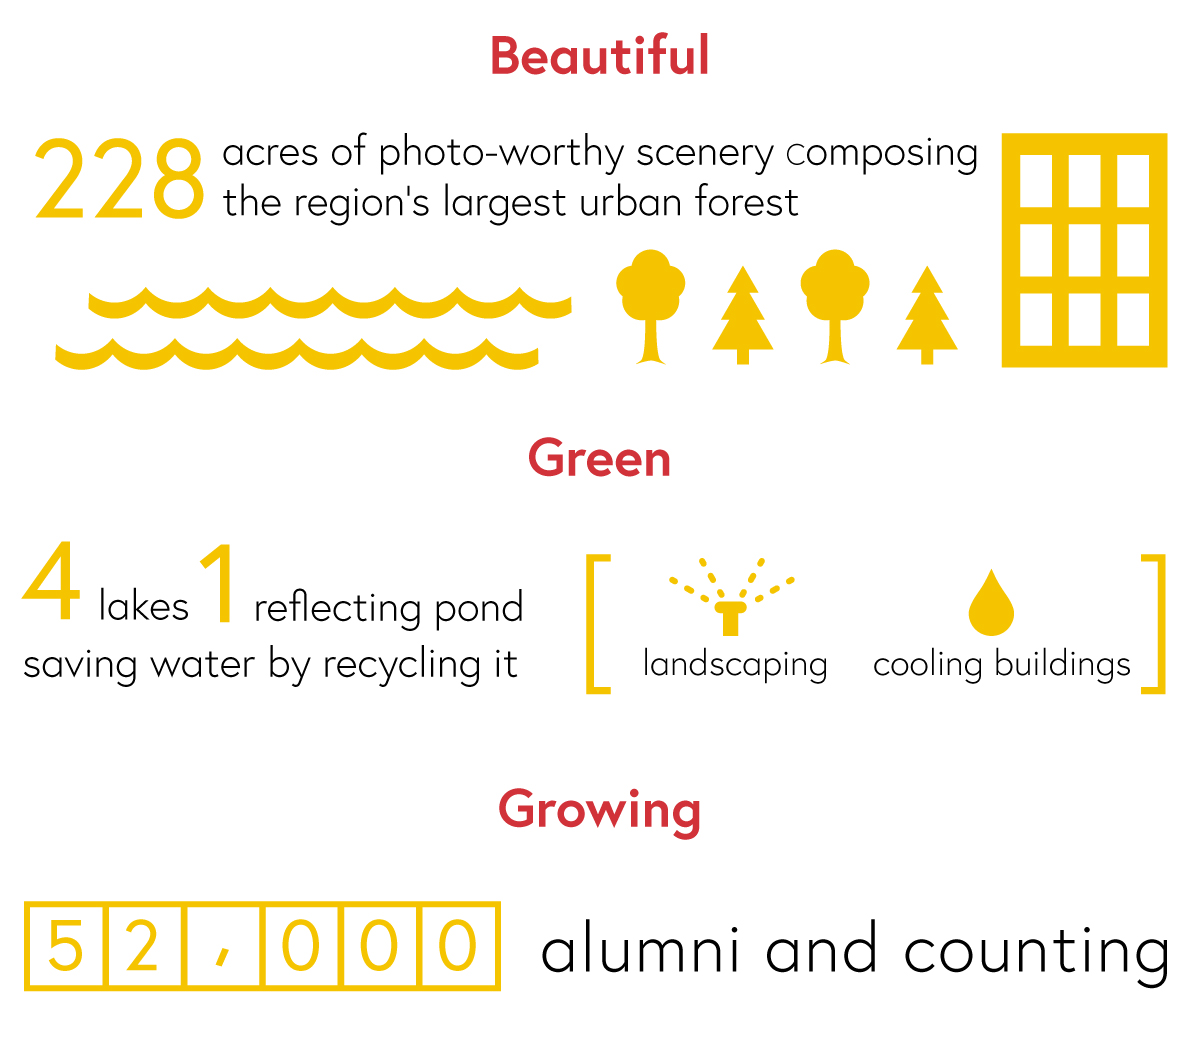 Beautiful: 228 acres of photo-worthy scenery composing the region's largest urban forest.<br /> Green: 4 lakes, 1 reflecting pond saving water by recycling it for landscaping and cooling buildings.<br /> Growing: 52,000 alumni and counting